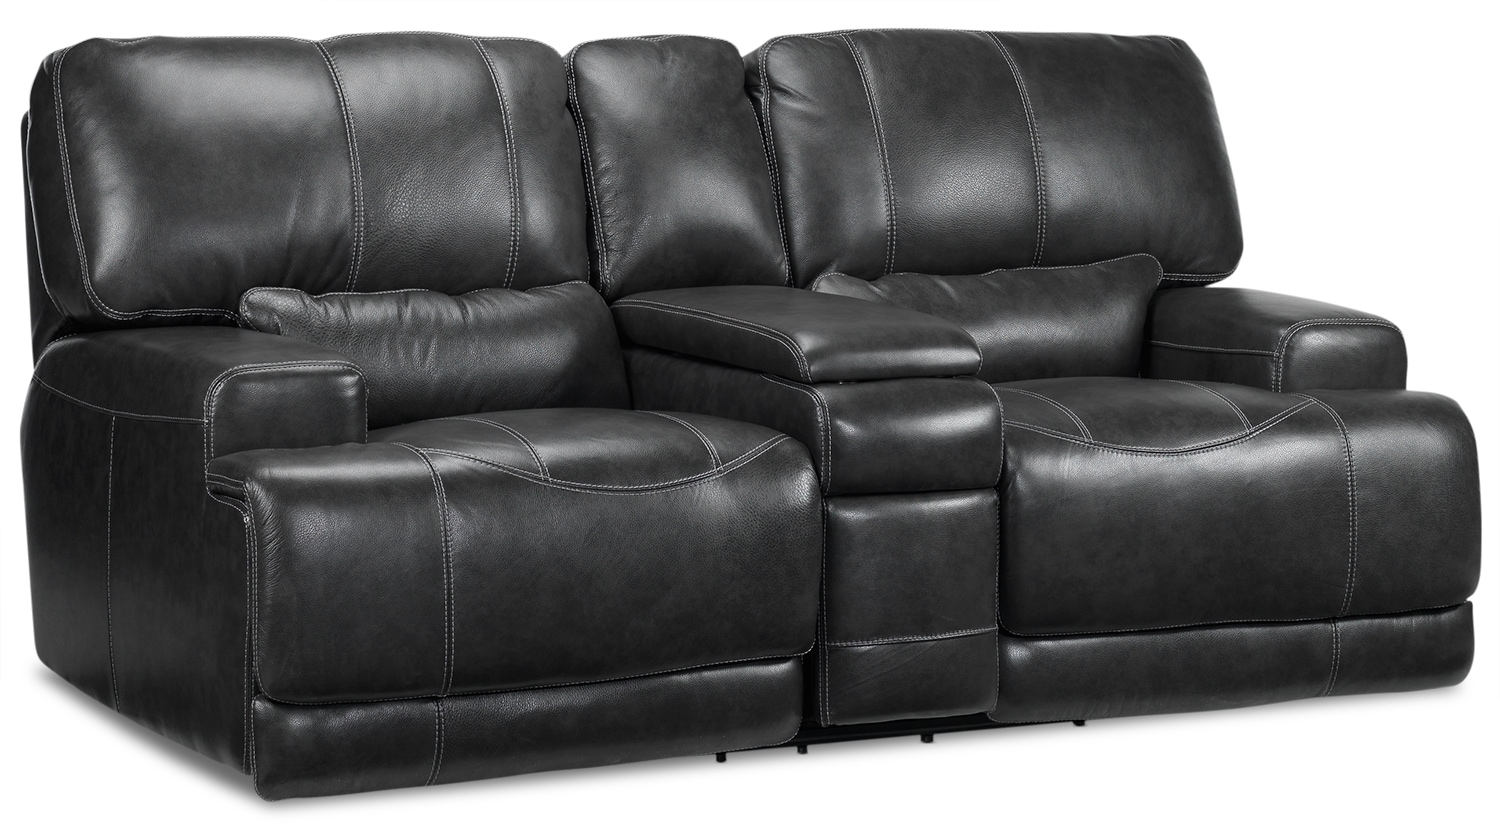 Dearborn Power Reclining Sofa Charcoal Leon 39 S